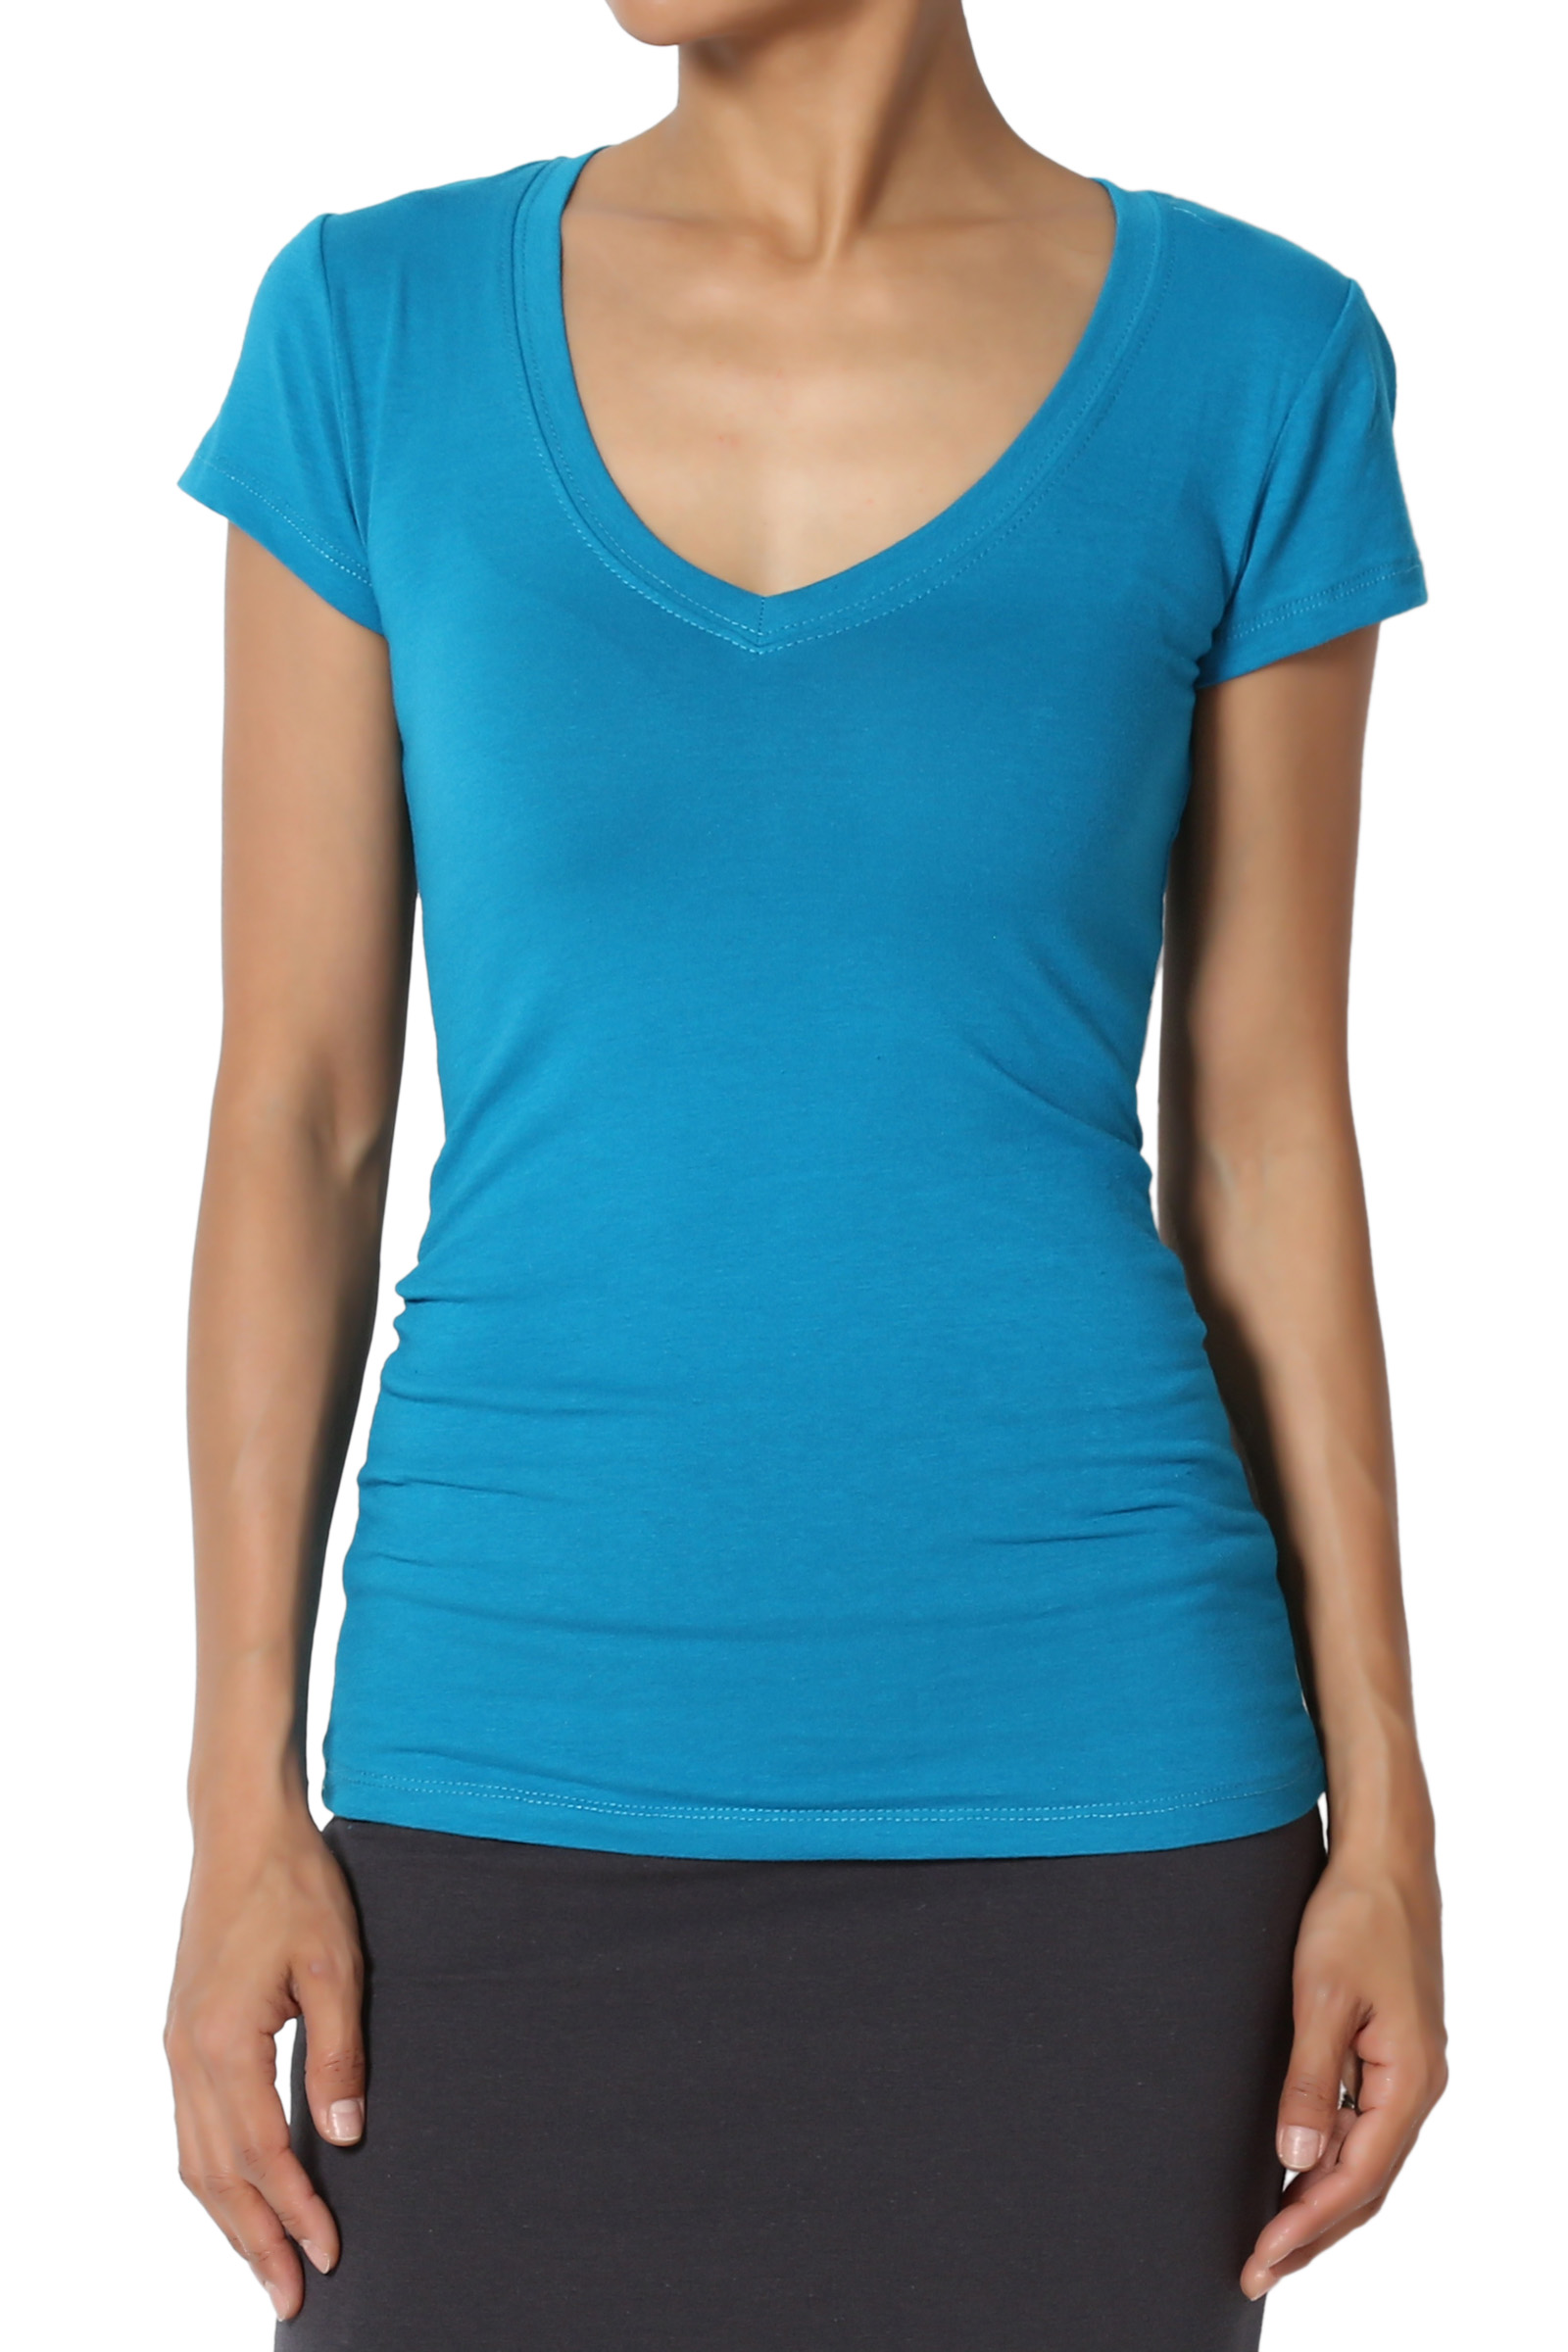 TheMogan Junior's Petite Basic Short Sleeve V-Neck T-Shirts Stretch Fitted Tee